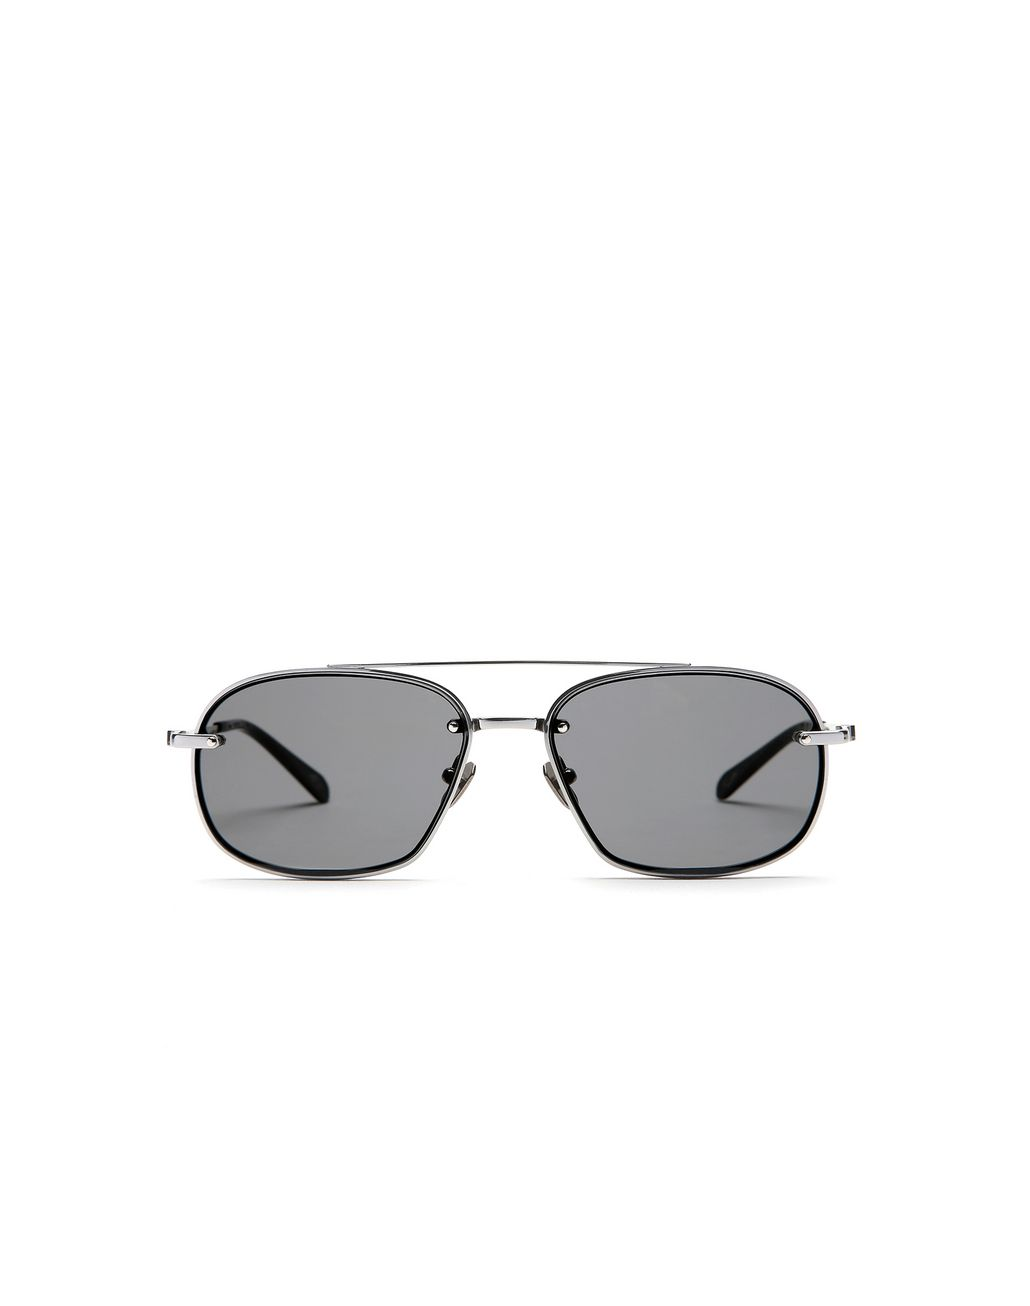 BRIONI Silver Teardrop Titanium Sunglasses with Grey Lenses  Sunglasses [*** pickupInStoreShippingNotGuaranteed_info ***] f